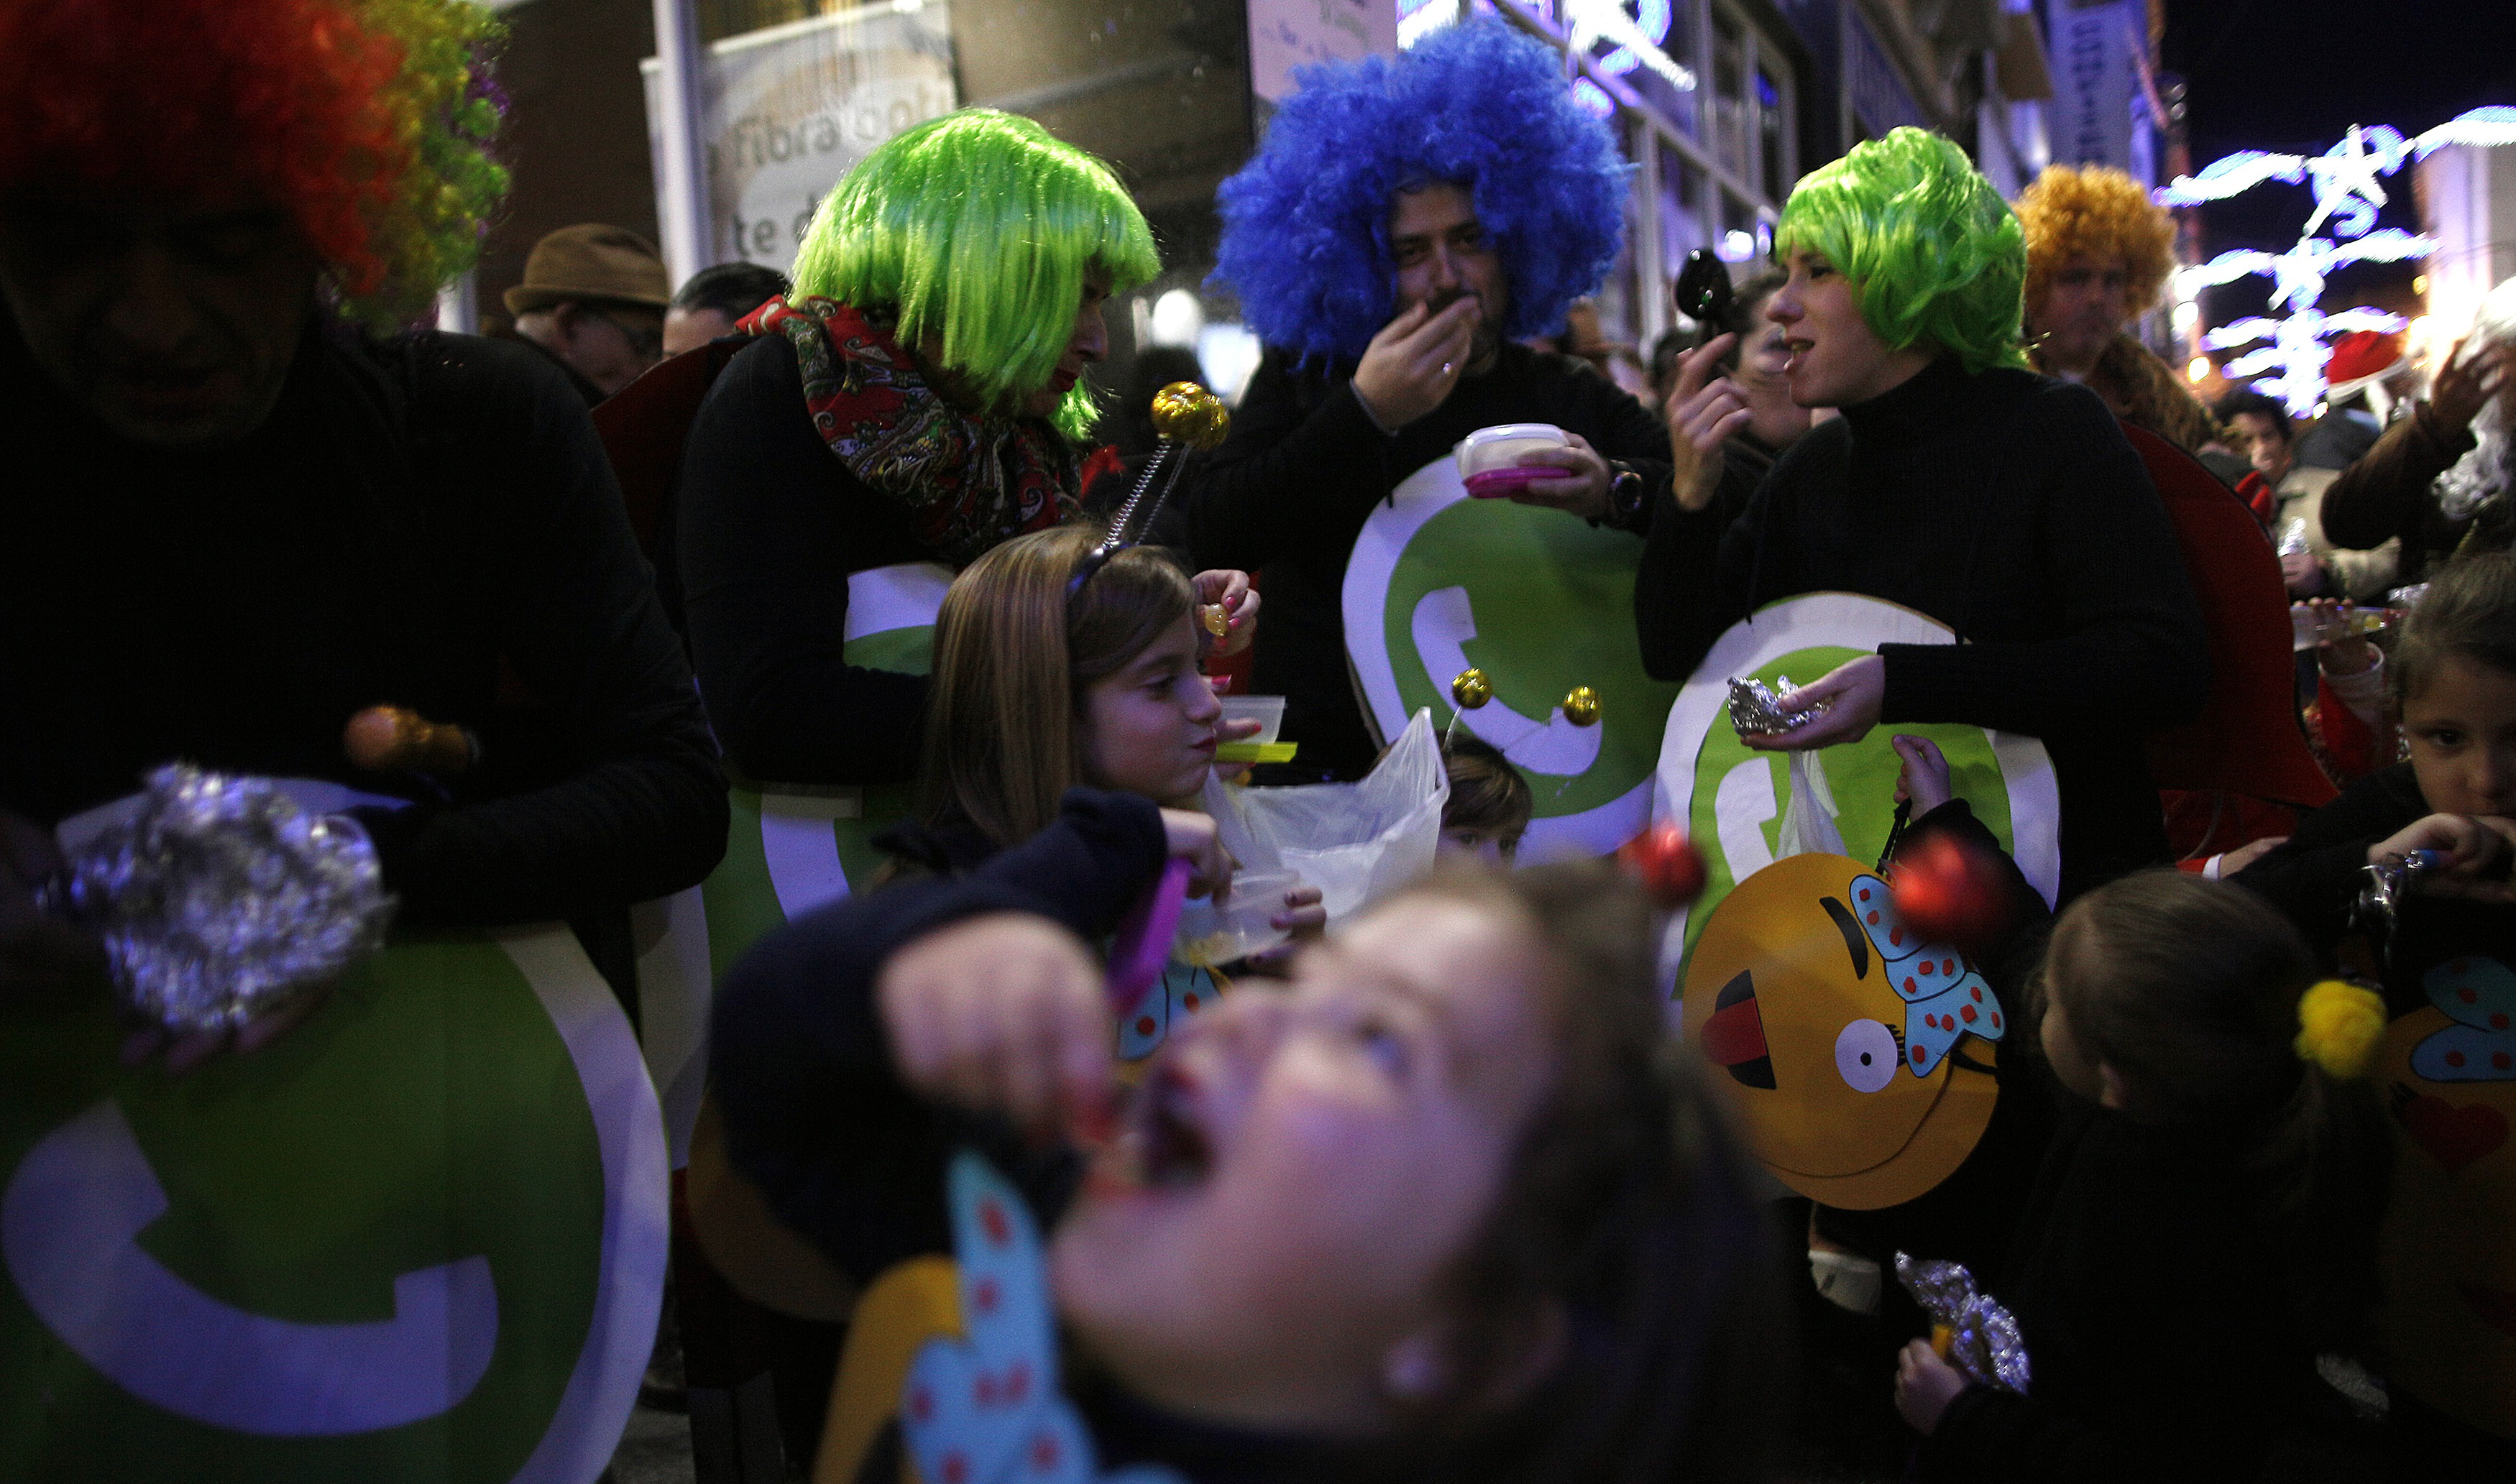 Revellers dressed up as a Whatsapp logo take part in the Spanish tradition of eating 12 grapes at midnight, as they take part in New Year's celebrations in Coin, near Malaga, southern Spain, early January 1, 2015. Villagers and revellers dressed up in funny costumes to take part in the New Year's celebration. REUTERS/Jon Nazca (SPAIN - Tags: SOCIETY ANNIVERSARY) - RTR4JT04